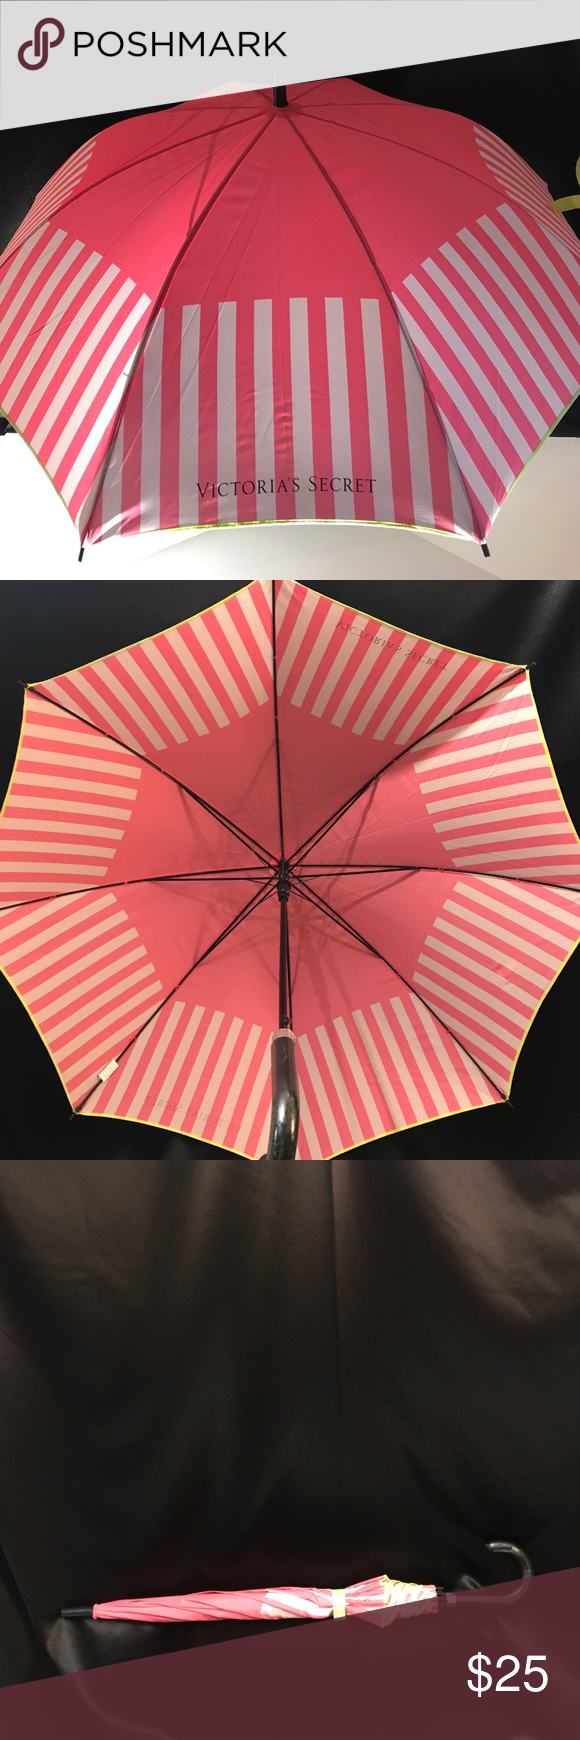 Victoria's Secret large umbrella pink white stripe Fun cute umbrella for those rainy days Large size Defects: dirt spot on top and rip in handle Victoria's Secret Accessories Umbrellas #largeumbrella Victoria's Secret large umbrella pink white stripe Fun cute umbrella for those rainy days Large size Defects: dirt spot on top and rip in handle Victoria's Secret Accessories Umbrellas #cuteumbrellas Victoria's Secret large umbrella pink white stripe Fun cute umbrella for those rainy days Larg #cuteumbrellas